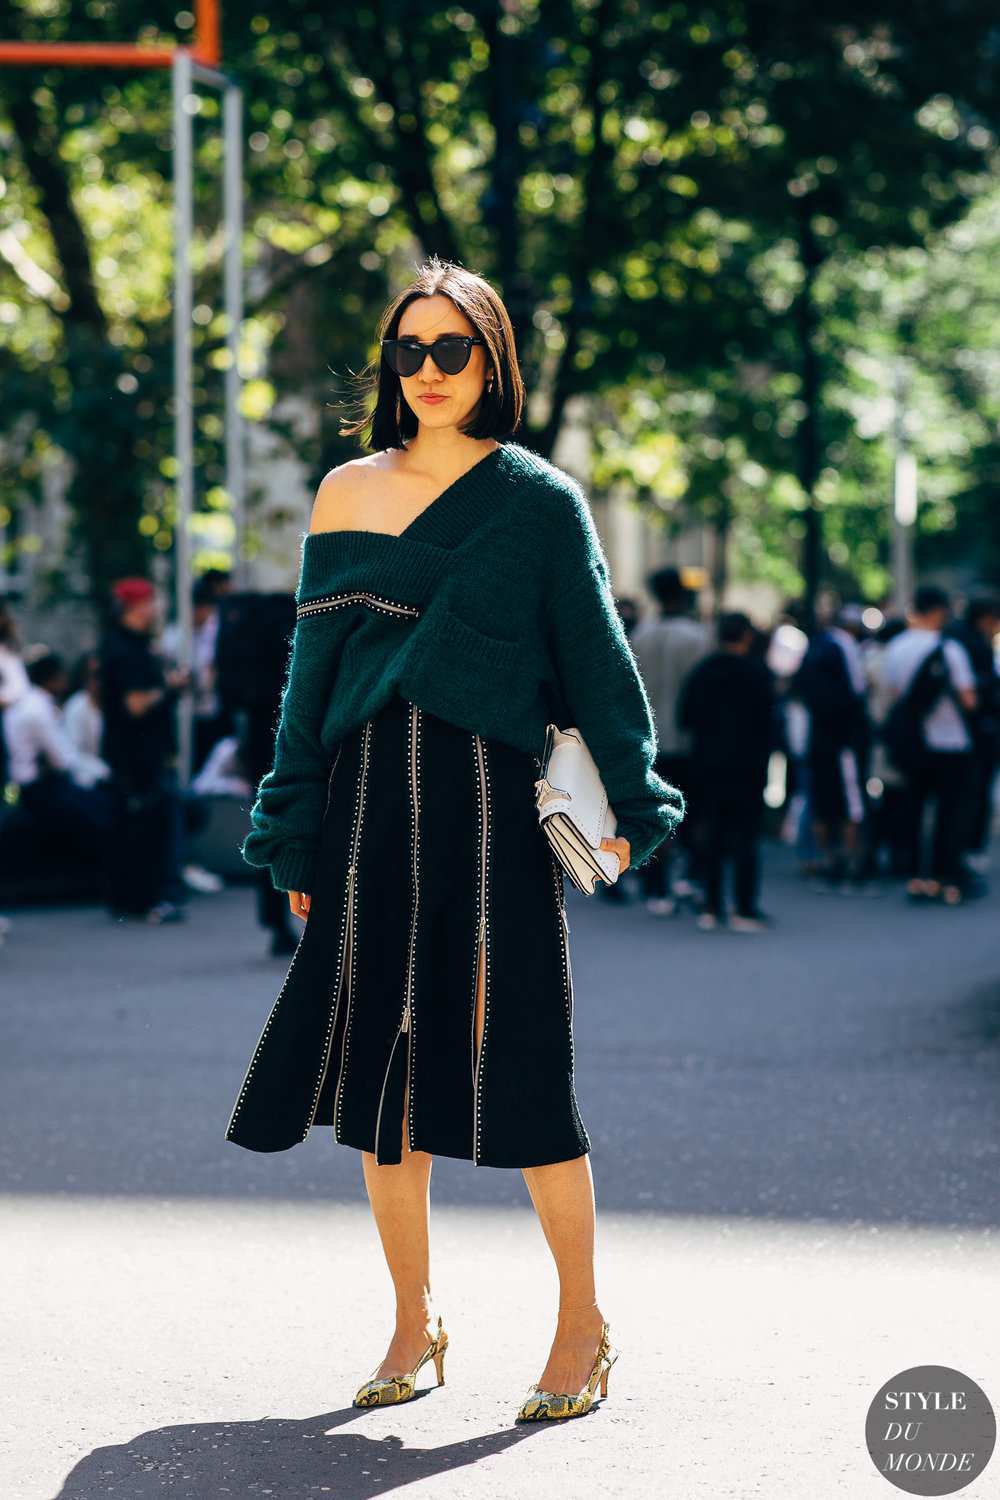 Eva-Chen-by-STYLEDUMONDE-Street-Style-Fashion-Photography20180917_48A0542.jpg